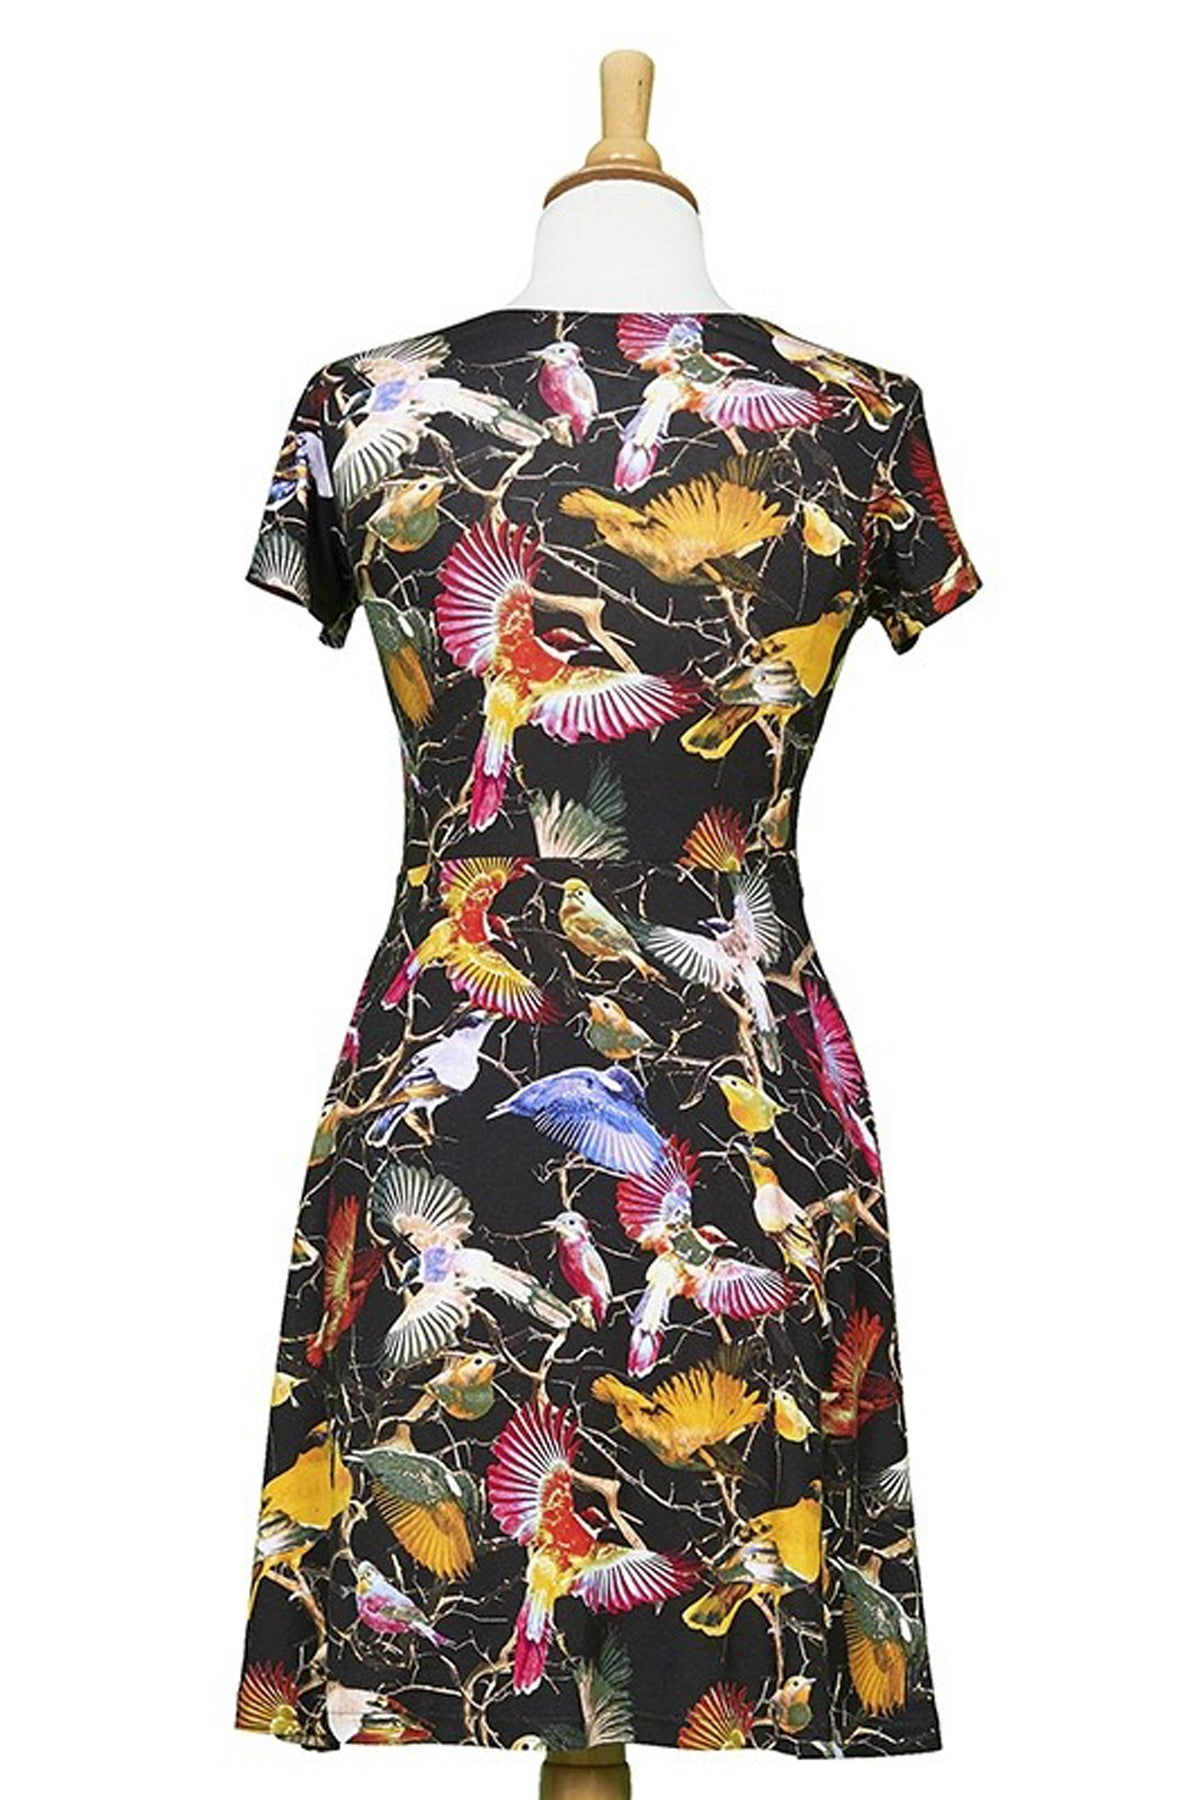 Manhattan Dress by Rien ne se Perd Tout se Cree, back view, multicolour hummingbird print, short sleeves, scoop neck, A-line, lightweight knit, sizes XS-XXL, made in Quebec